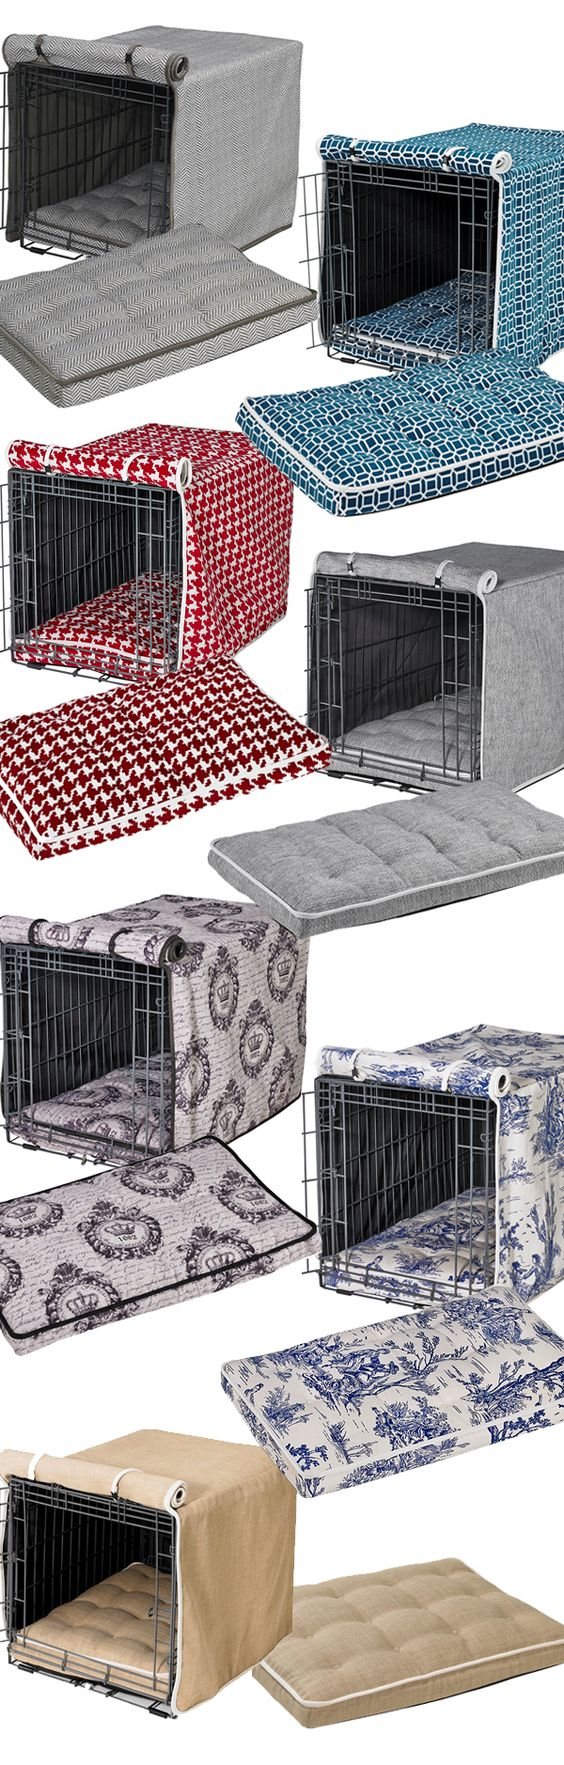 Spruce up your dog's home with our selection of designer crate covers and crate mattresses. Not only offering a refined look, crate covers and mattresses make a wire crate more comfortable and secure for your dog.